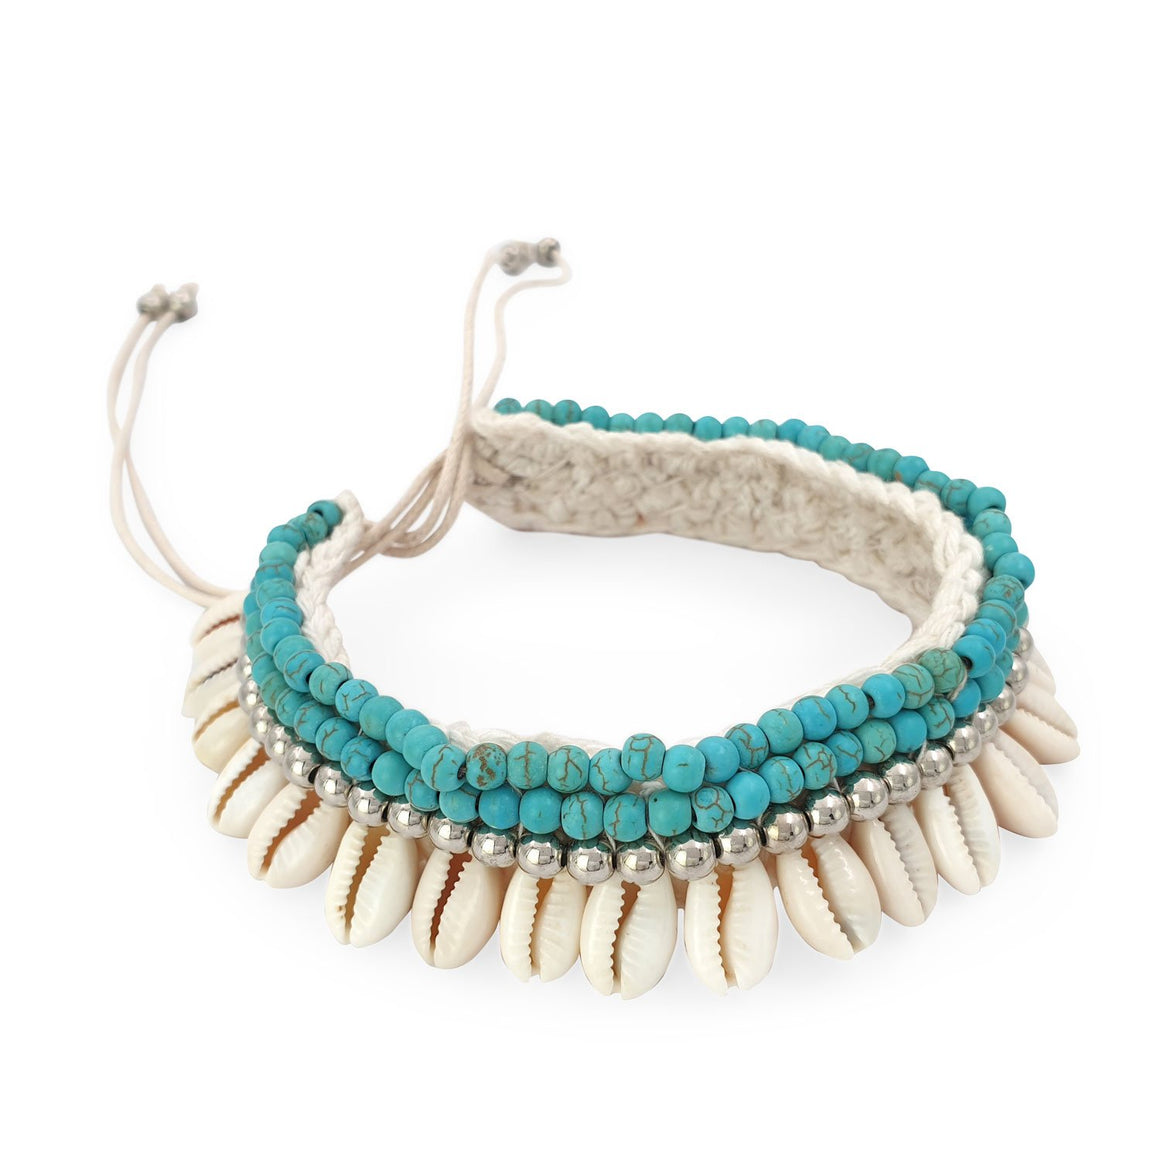 Crochet boho anklet shell turquoise howlite and silver plated beads